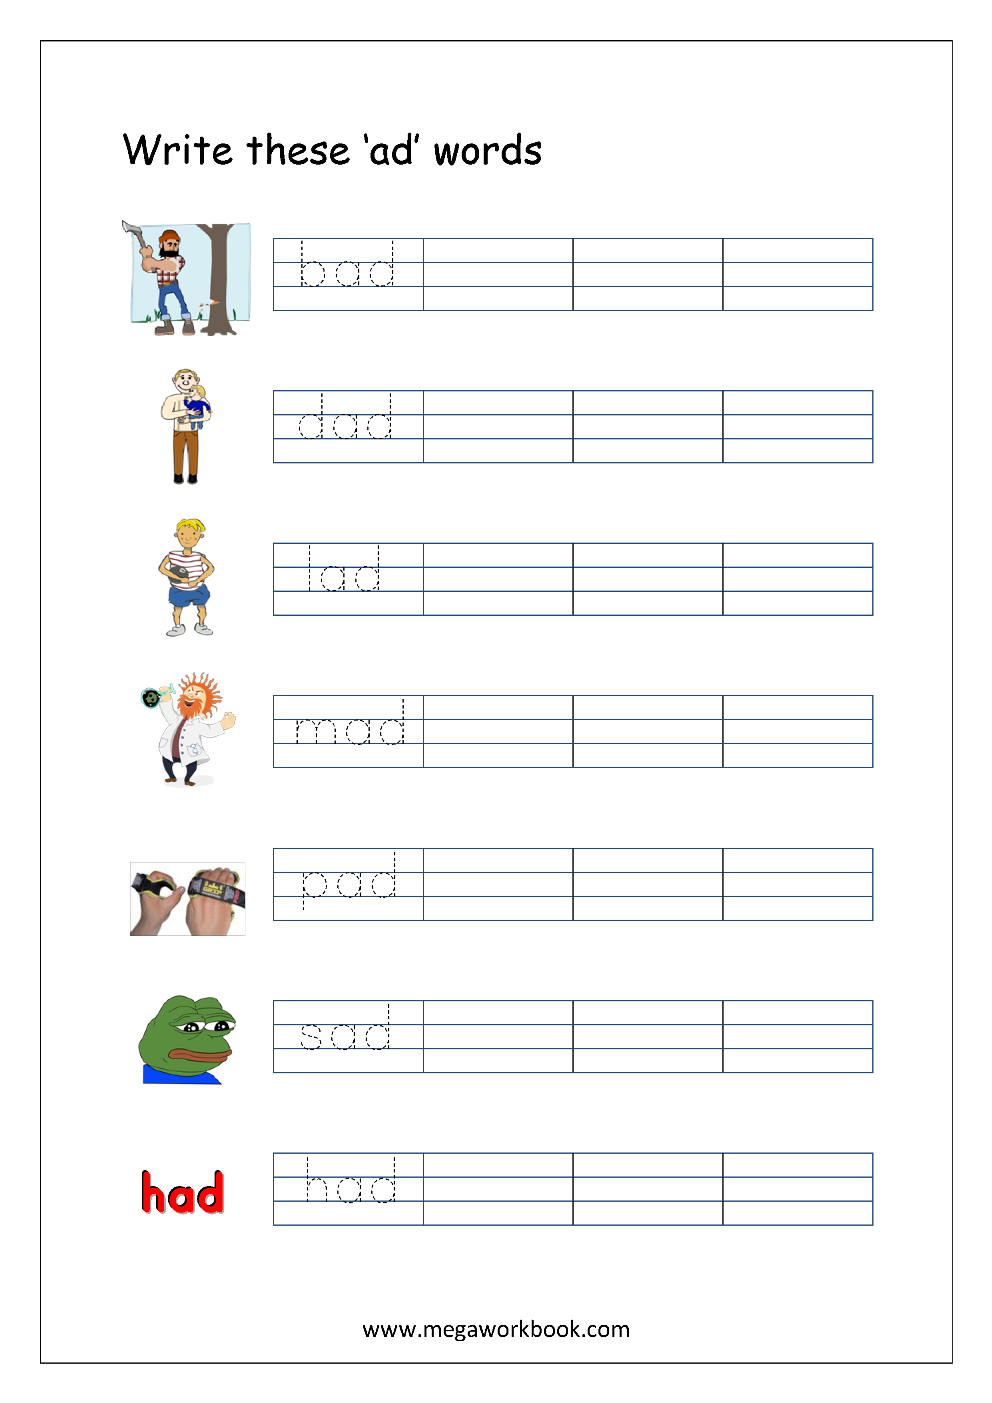 Free Printable Cvc Words Writing Worksheets For Kids - Three Letter | Cvc Words Worksheets Free Printable